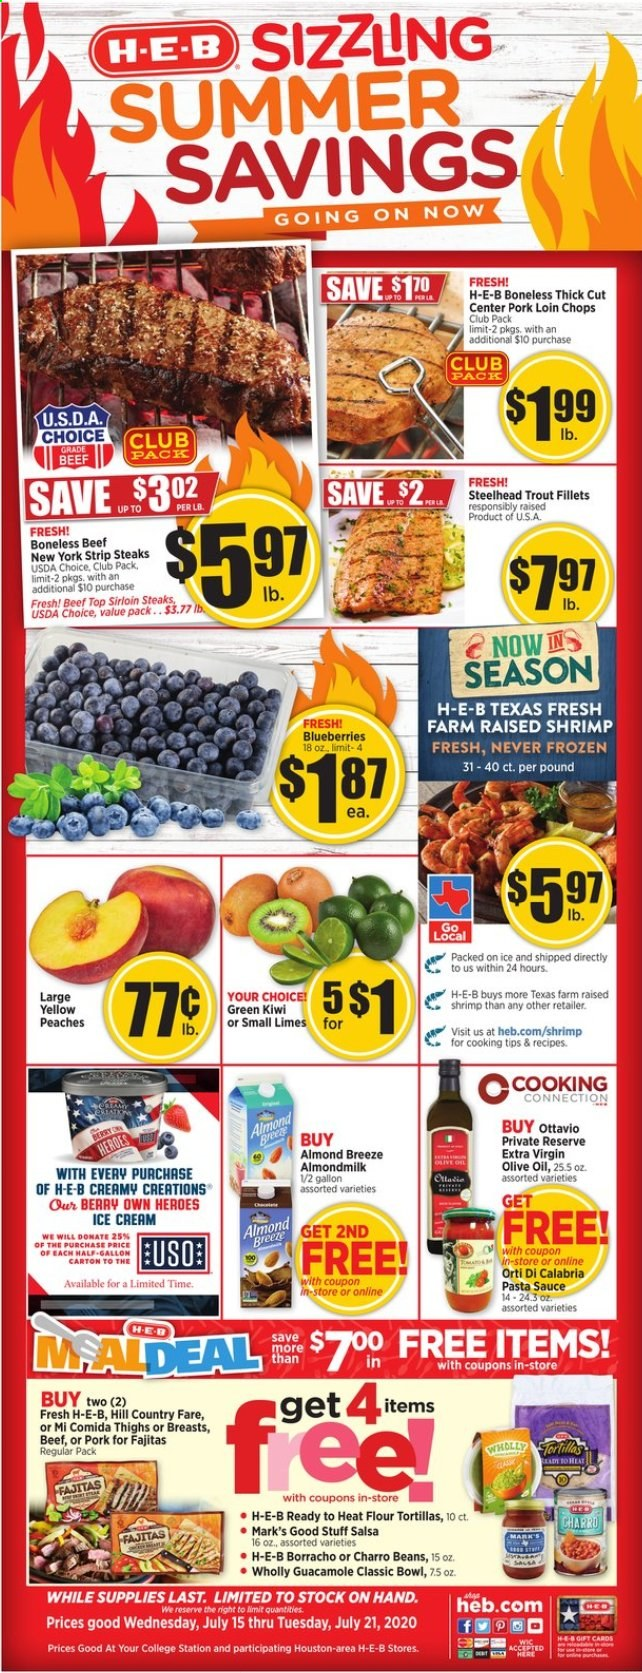 H-E-B Flyer - 07.15.2020 - 07.21.2020 - Sales products - beans, beef meat, blueberries, bowl, extra virgin olive oil, flour, kiwi, limes, shrimp, tortillas, trout, ice cream, pork loin, pork meat, pasta sauce, peaches, olive oil, salsa, pasta, berry, sauce, guacamole. Page 1.